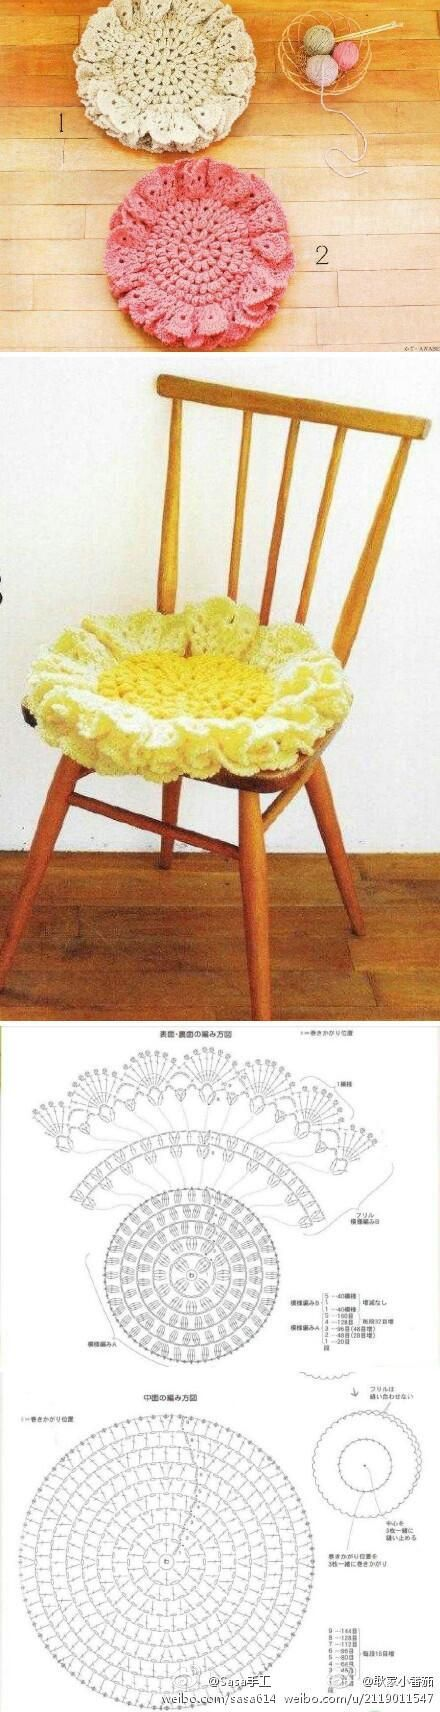 fluffy crochet chair pad - 2 layers - much nicer  (and easier) than a real cushion!